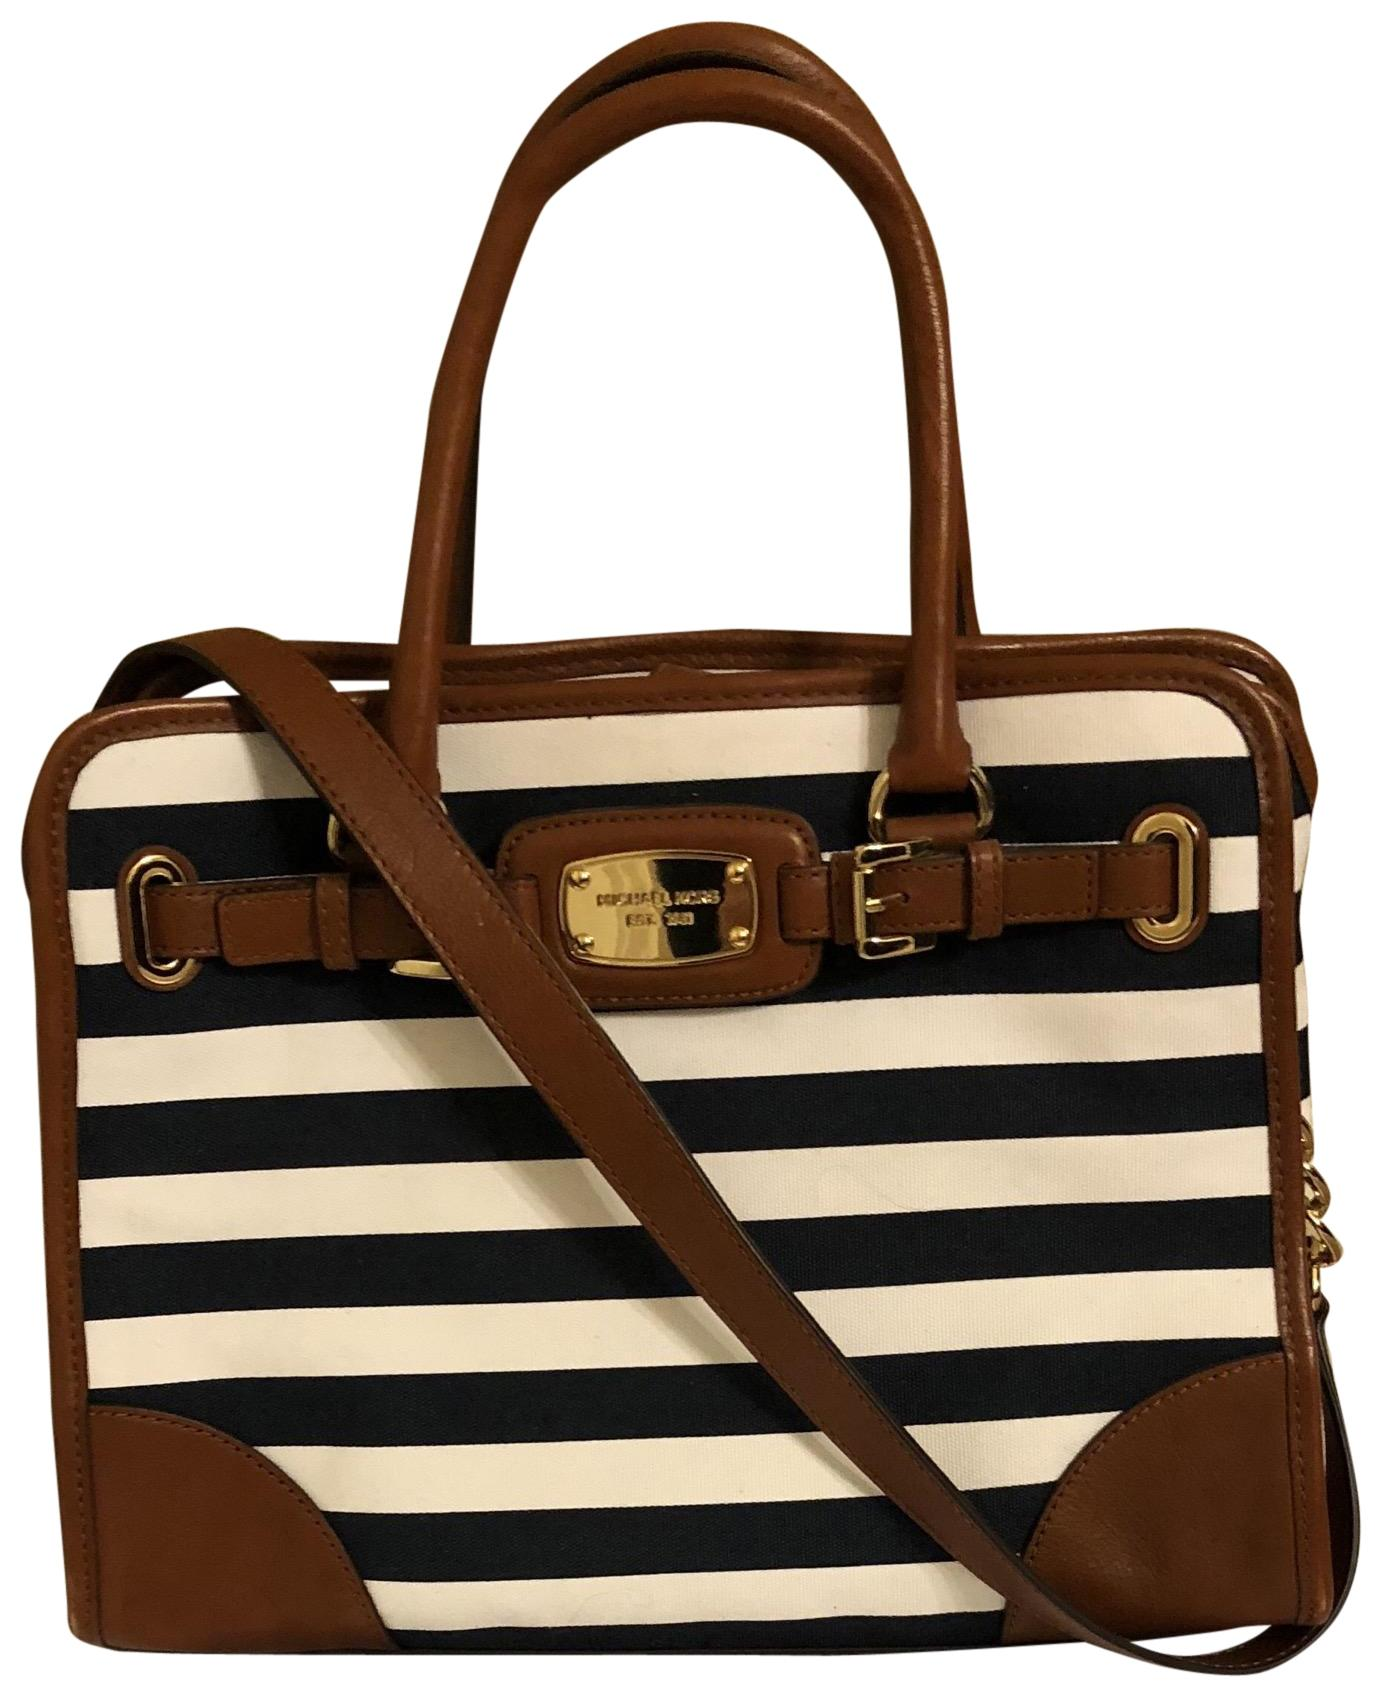 3bf7dbb03a10 coupon michael kors hamilton satchel striped tote in navy blue white  luggage 09275 d8c37